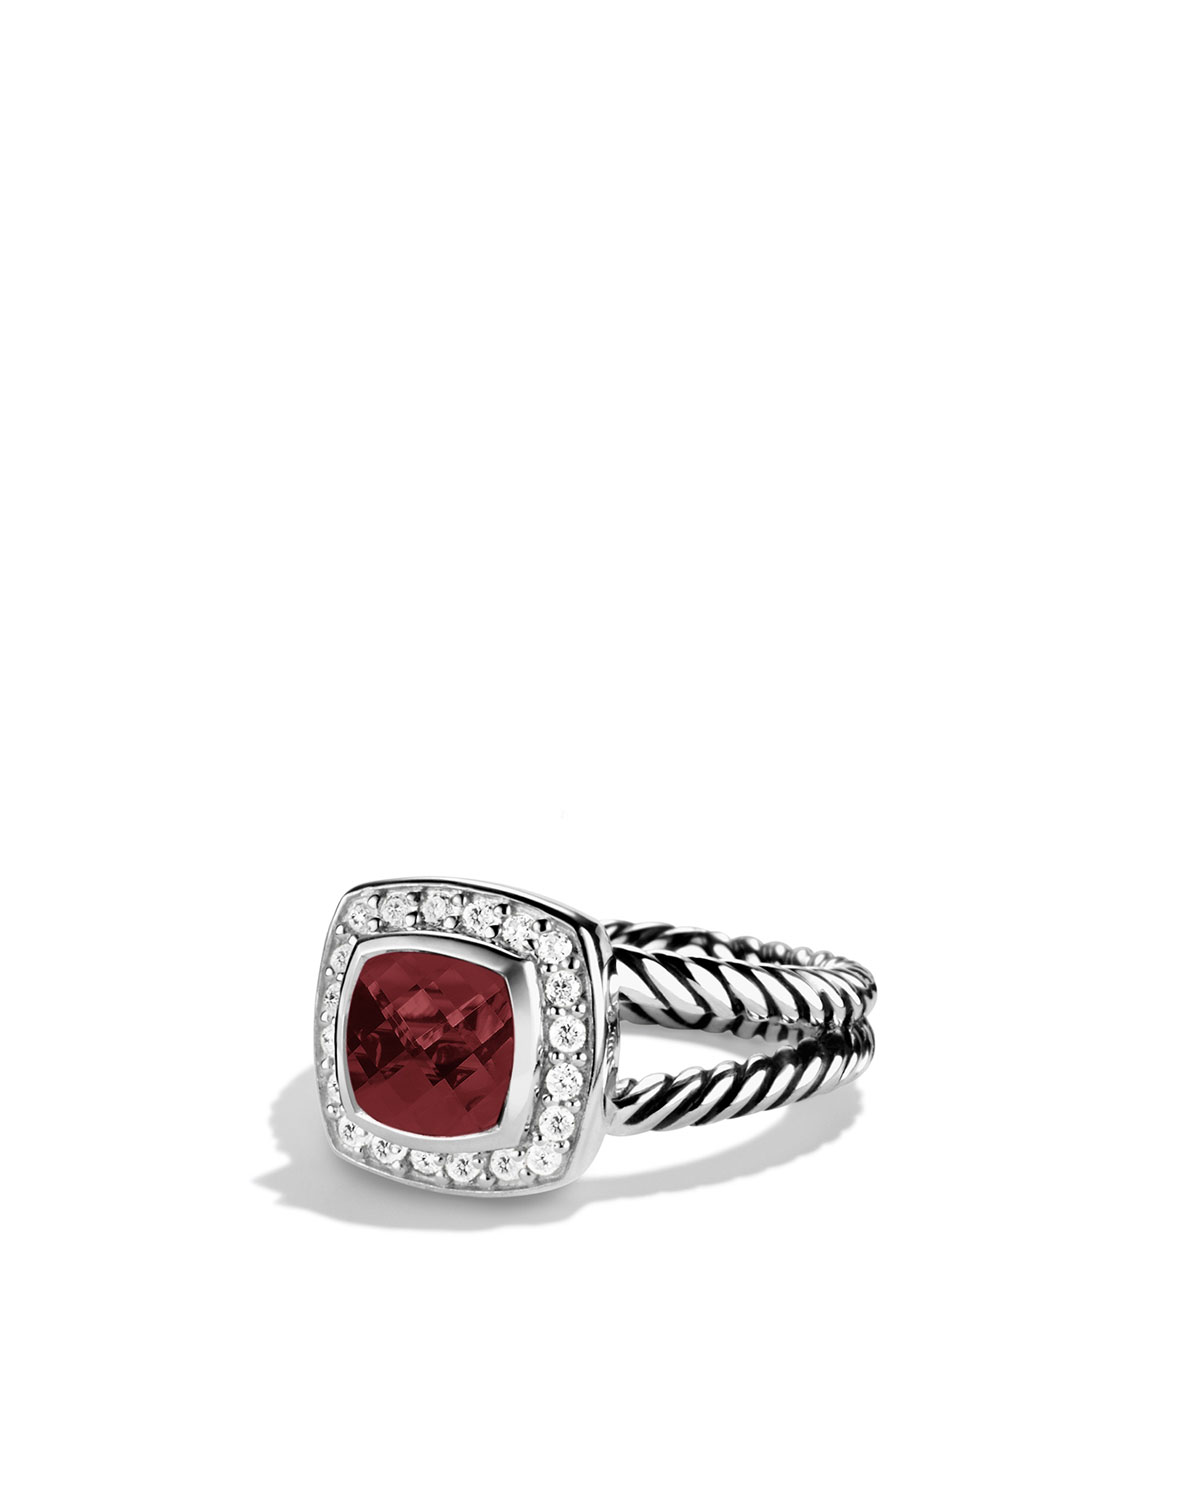 David Yurman Garnet Jewelry | Neiman Marcus